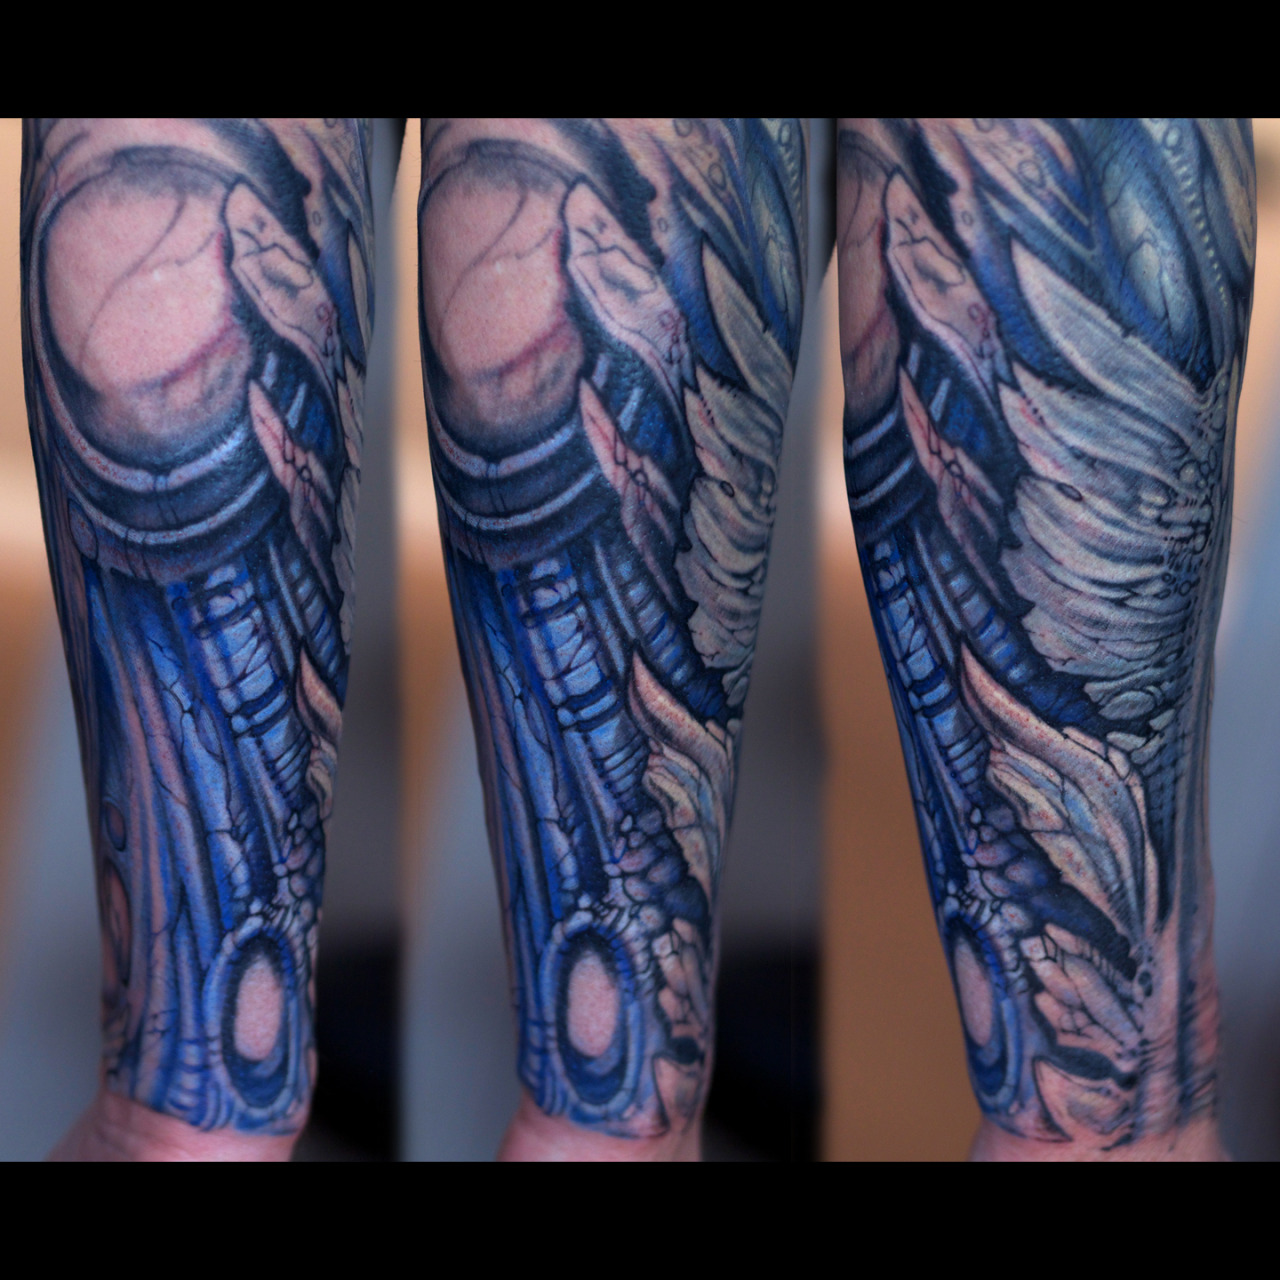 More progress on Nate's biomech sleeve from last week..   Artist: Paco Dietz    Studio: Graven Image Tattoo, Santa Clara CA